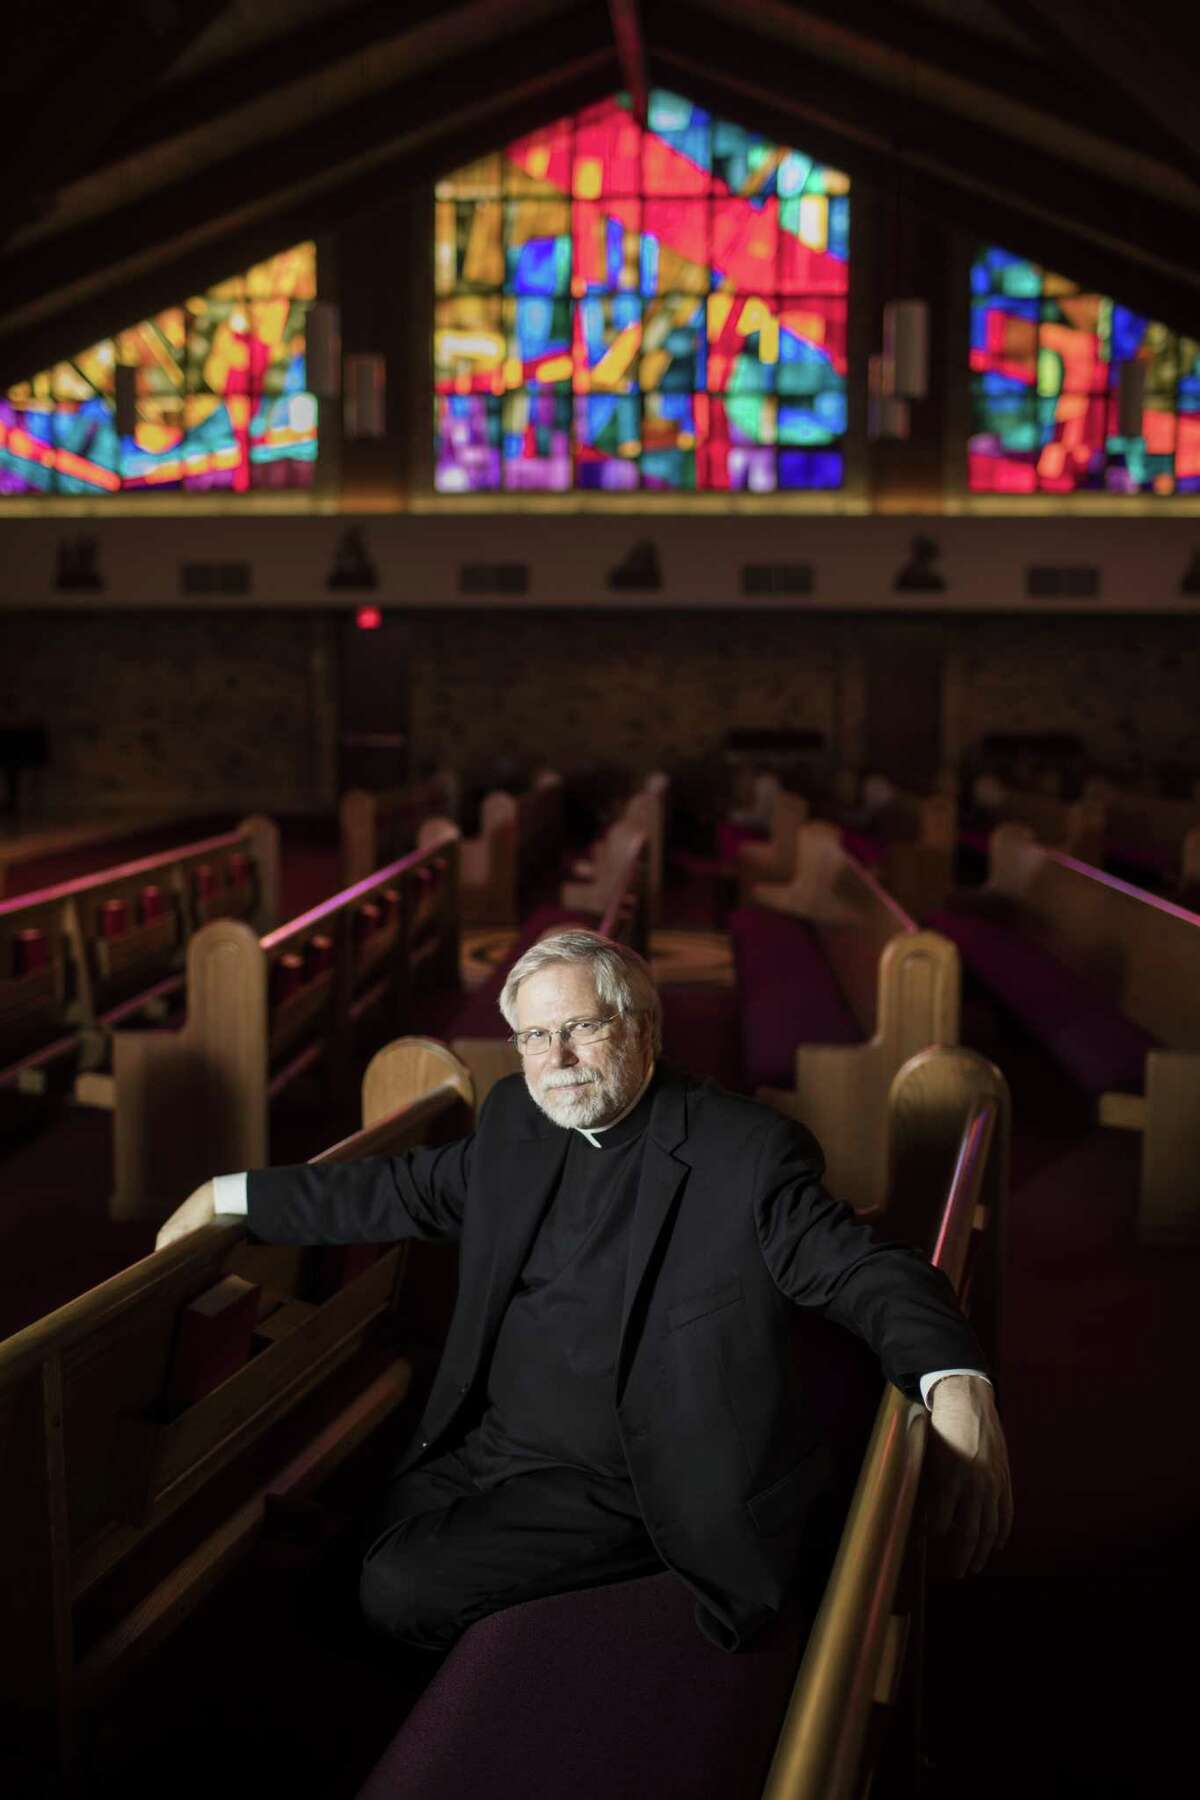 St. John Vianney Catholic Church's fourth pastor, Father Troy Gately was helpful and critical figure in the community for the many flood victims on the west side of Houston on the aftermath of Hurricane Harvey.